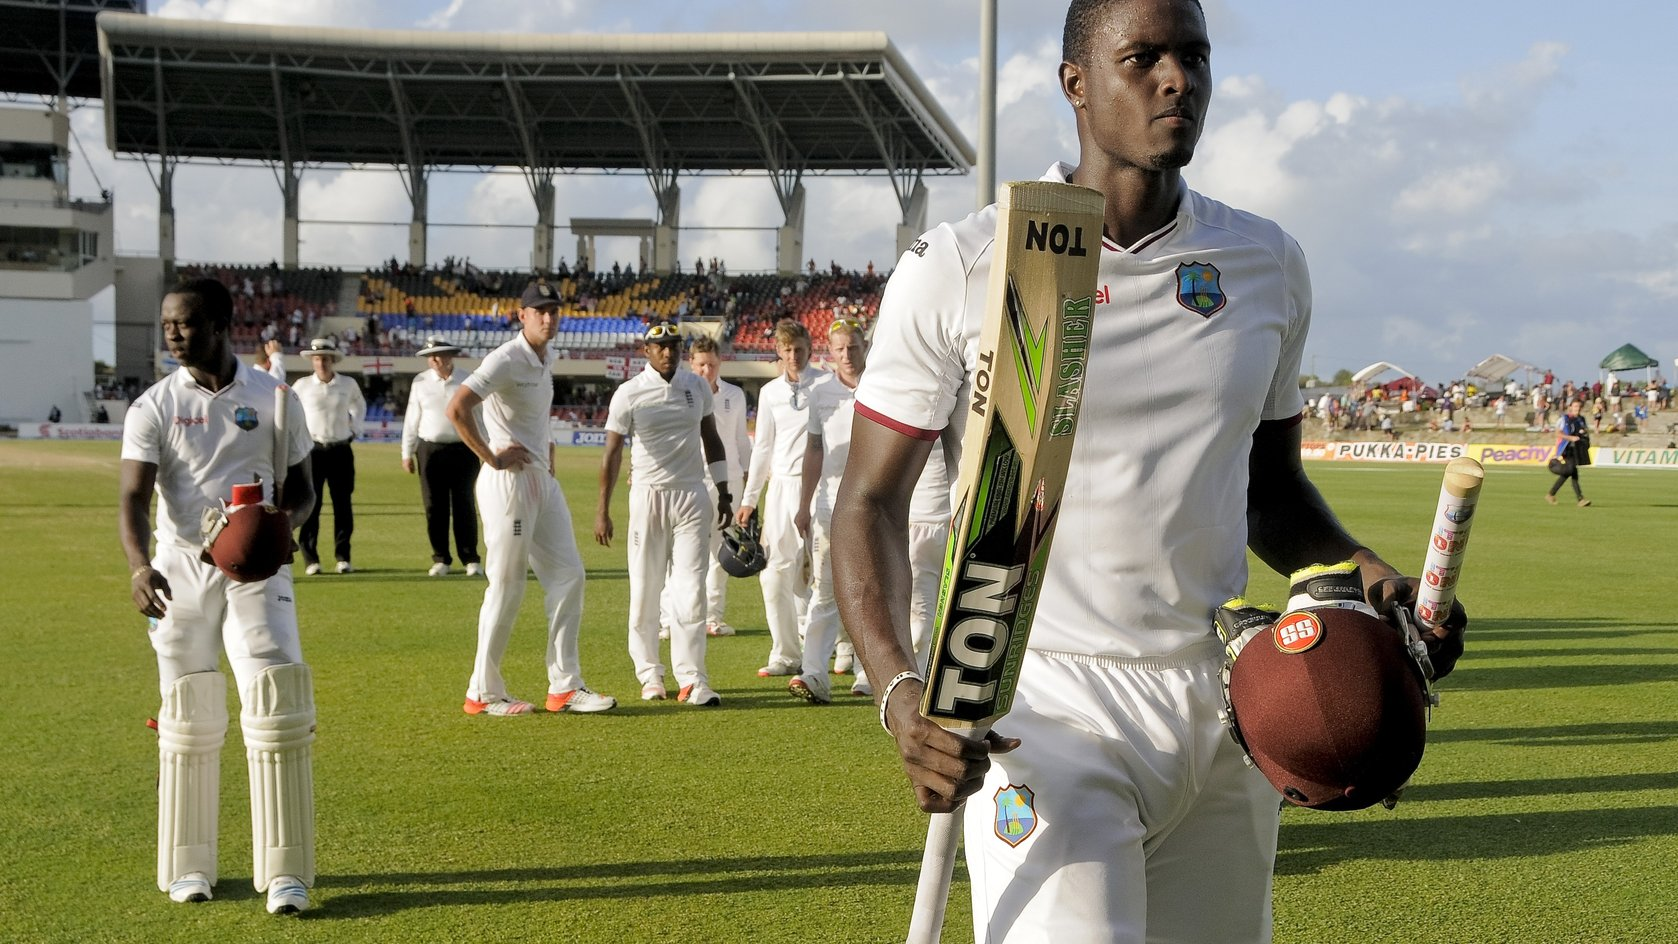 Jason Holder leaves the field after scoring maiden Test century